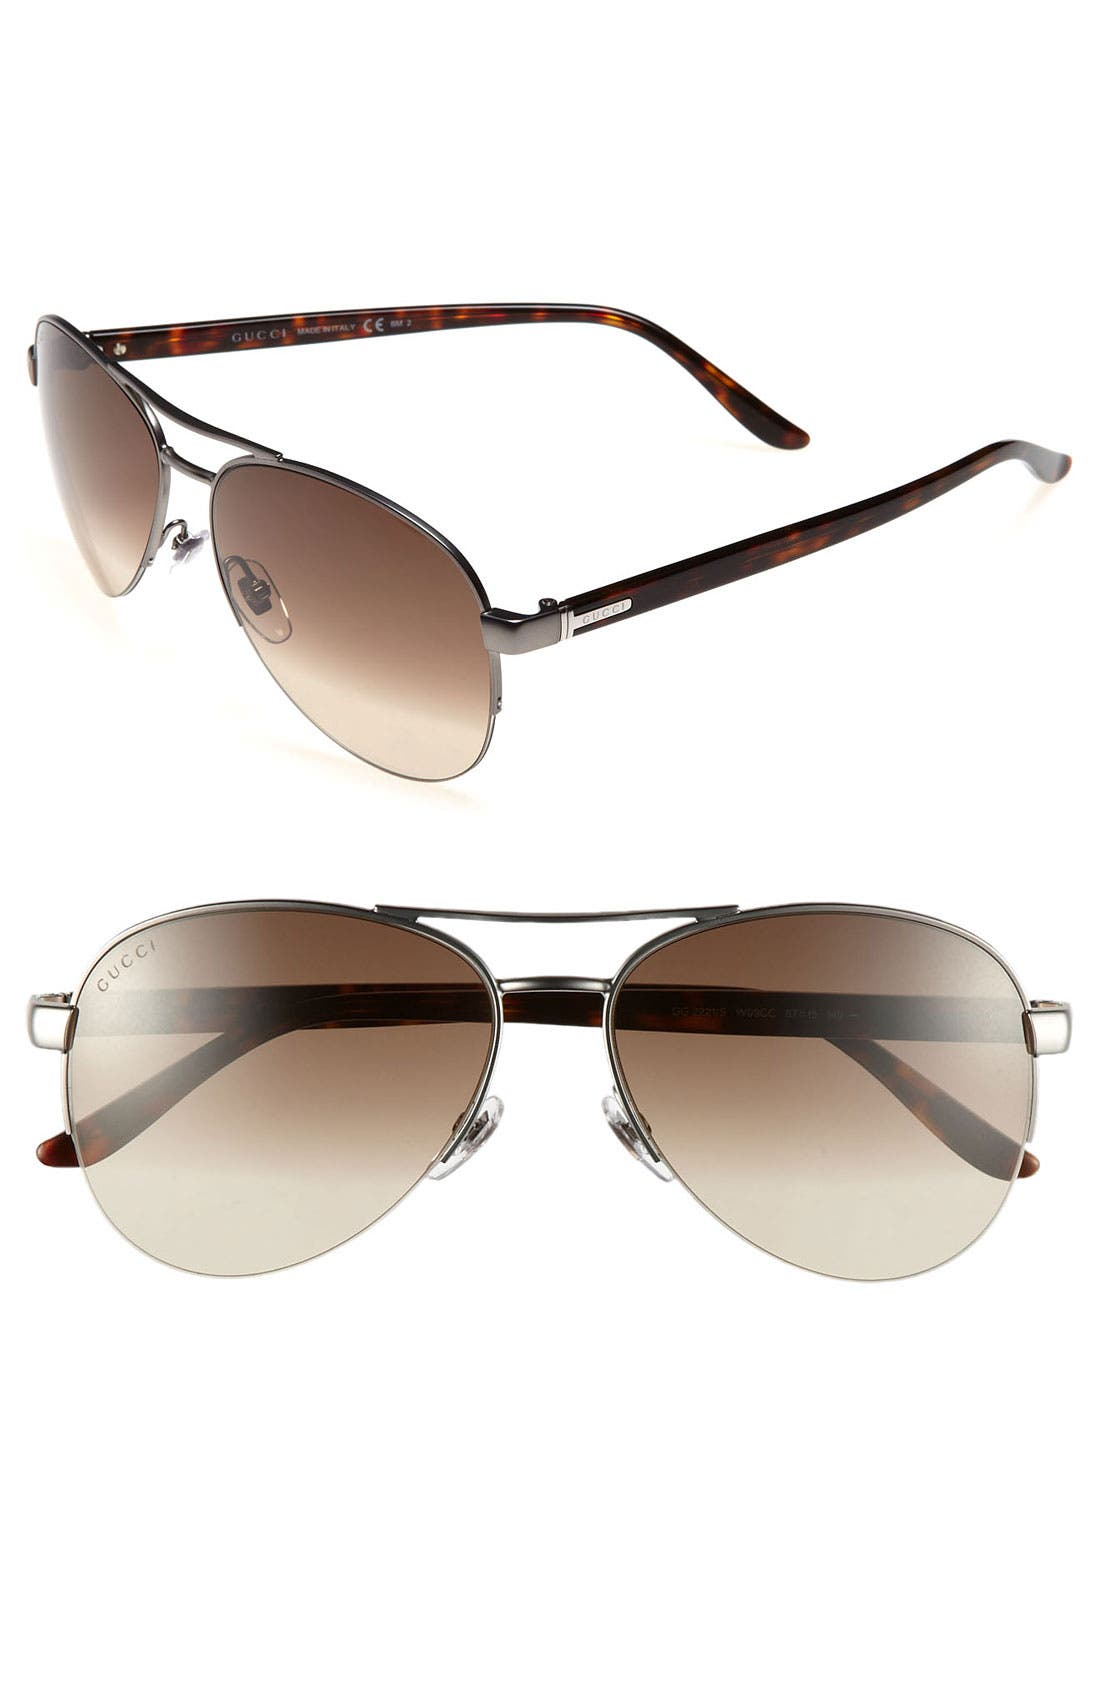 Main Image - Gucci Metal 57mm Aviator Sunglasses